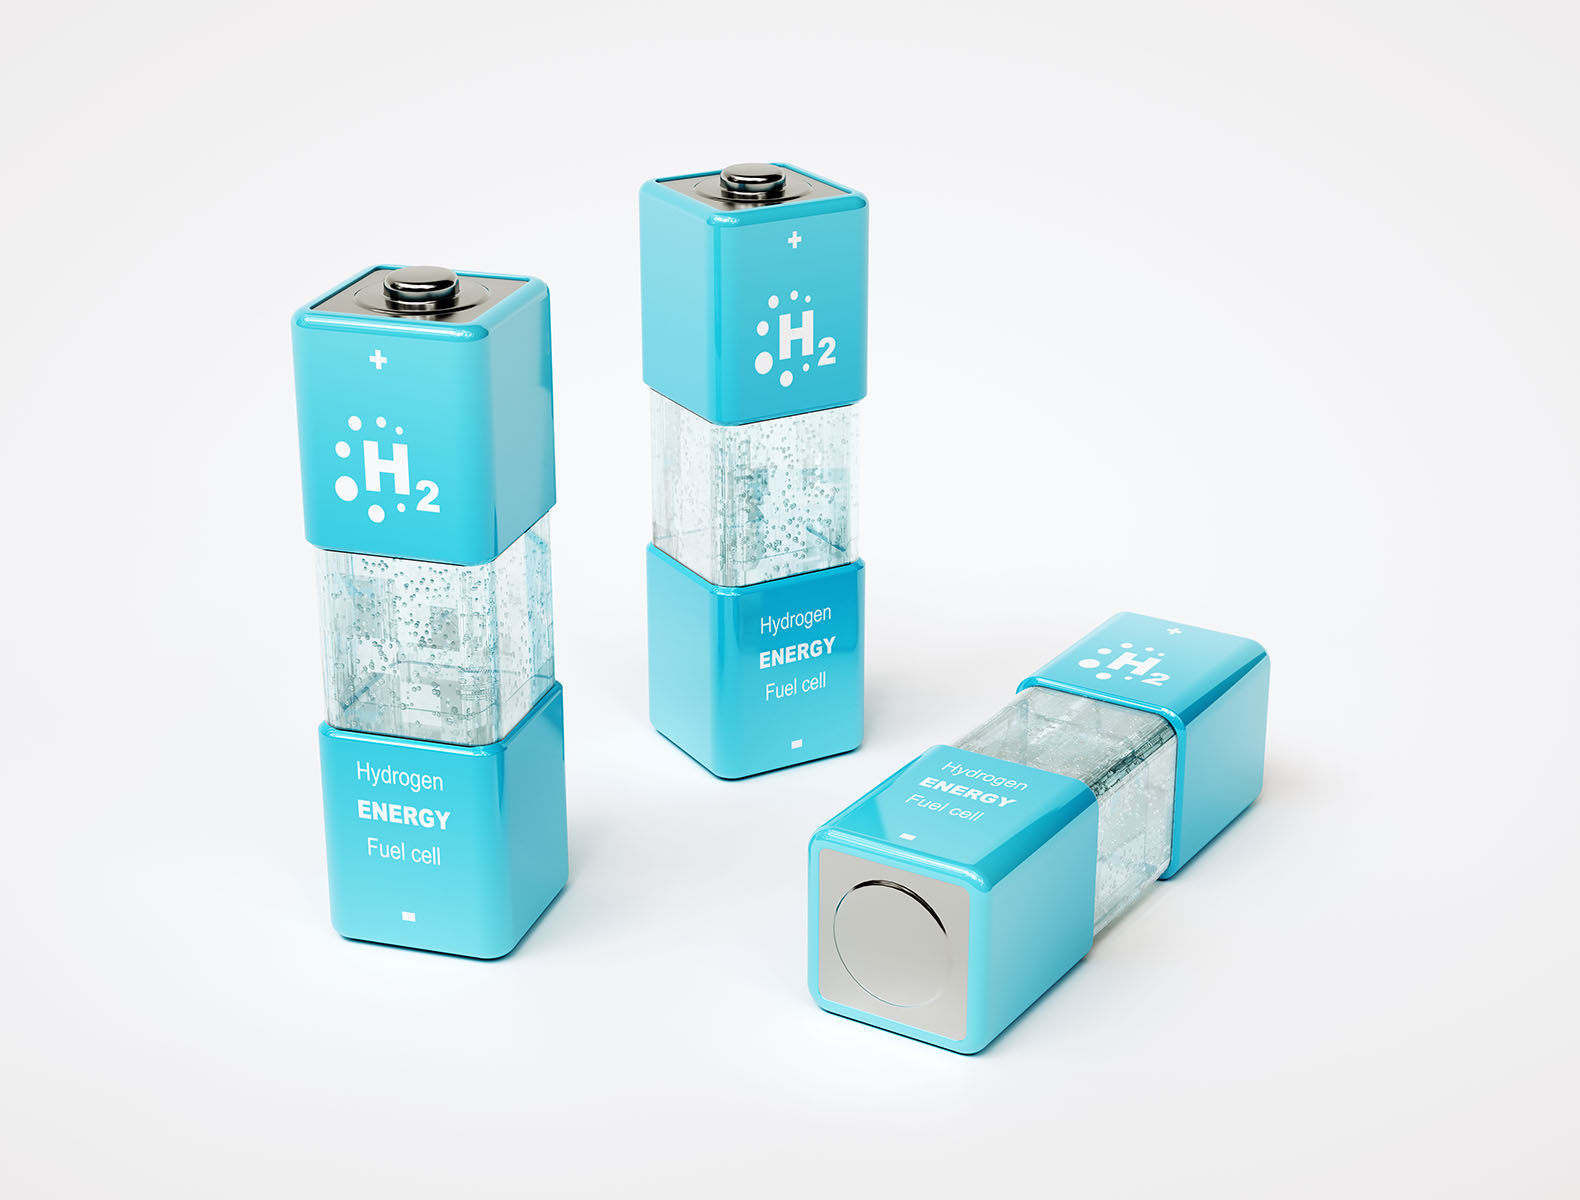 Scientists create innovative hydrogen fuel